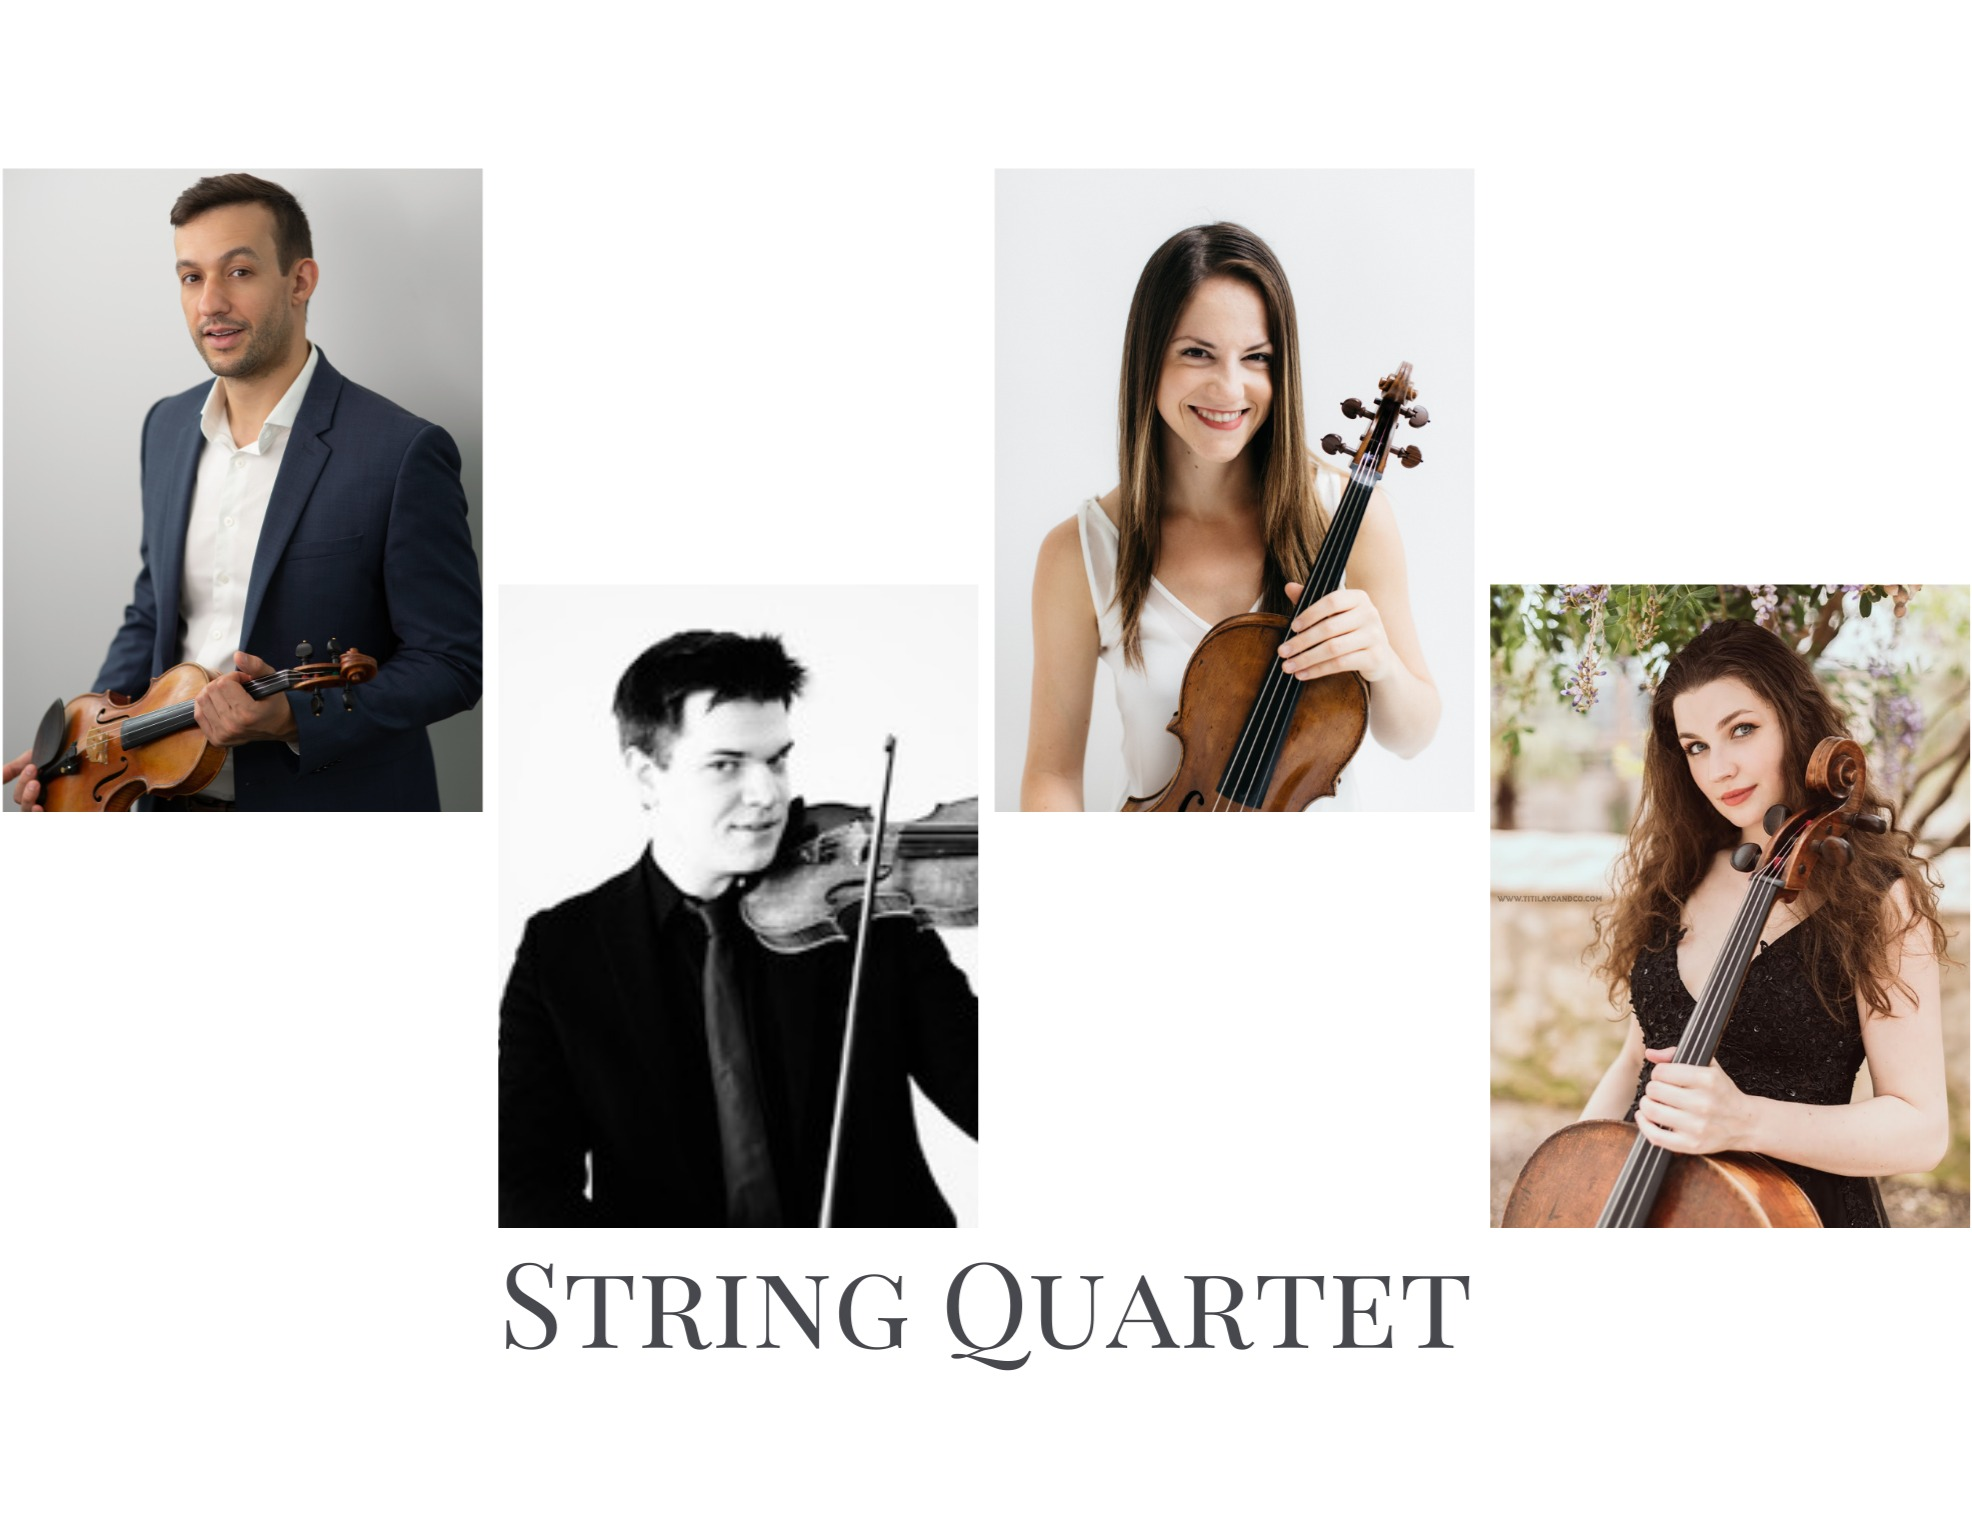 String%20Quartet%20(2)_edited